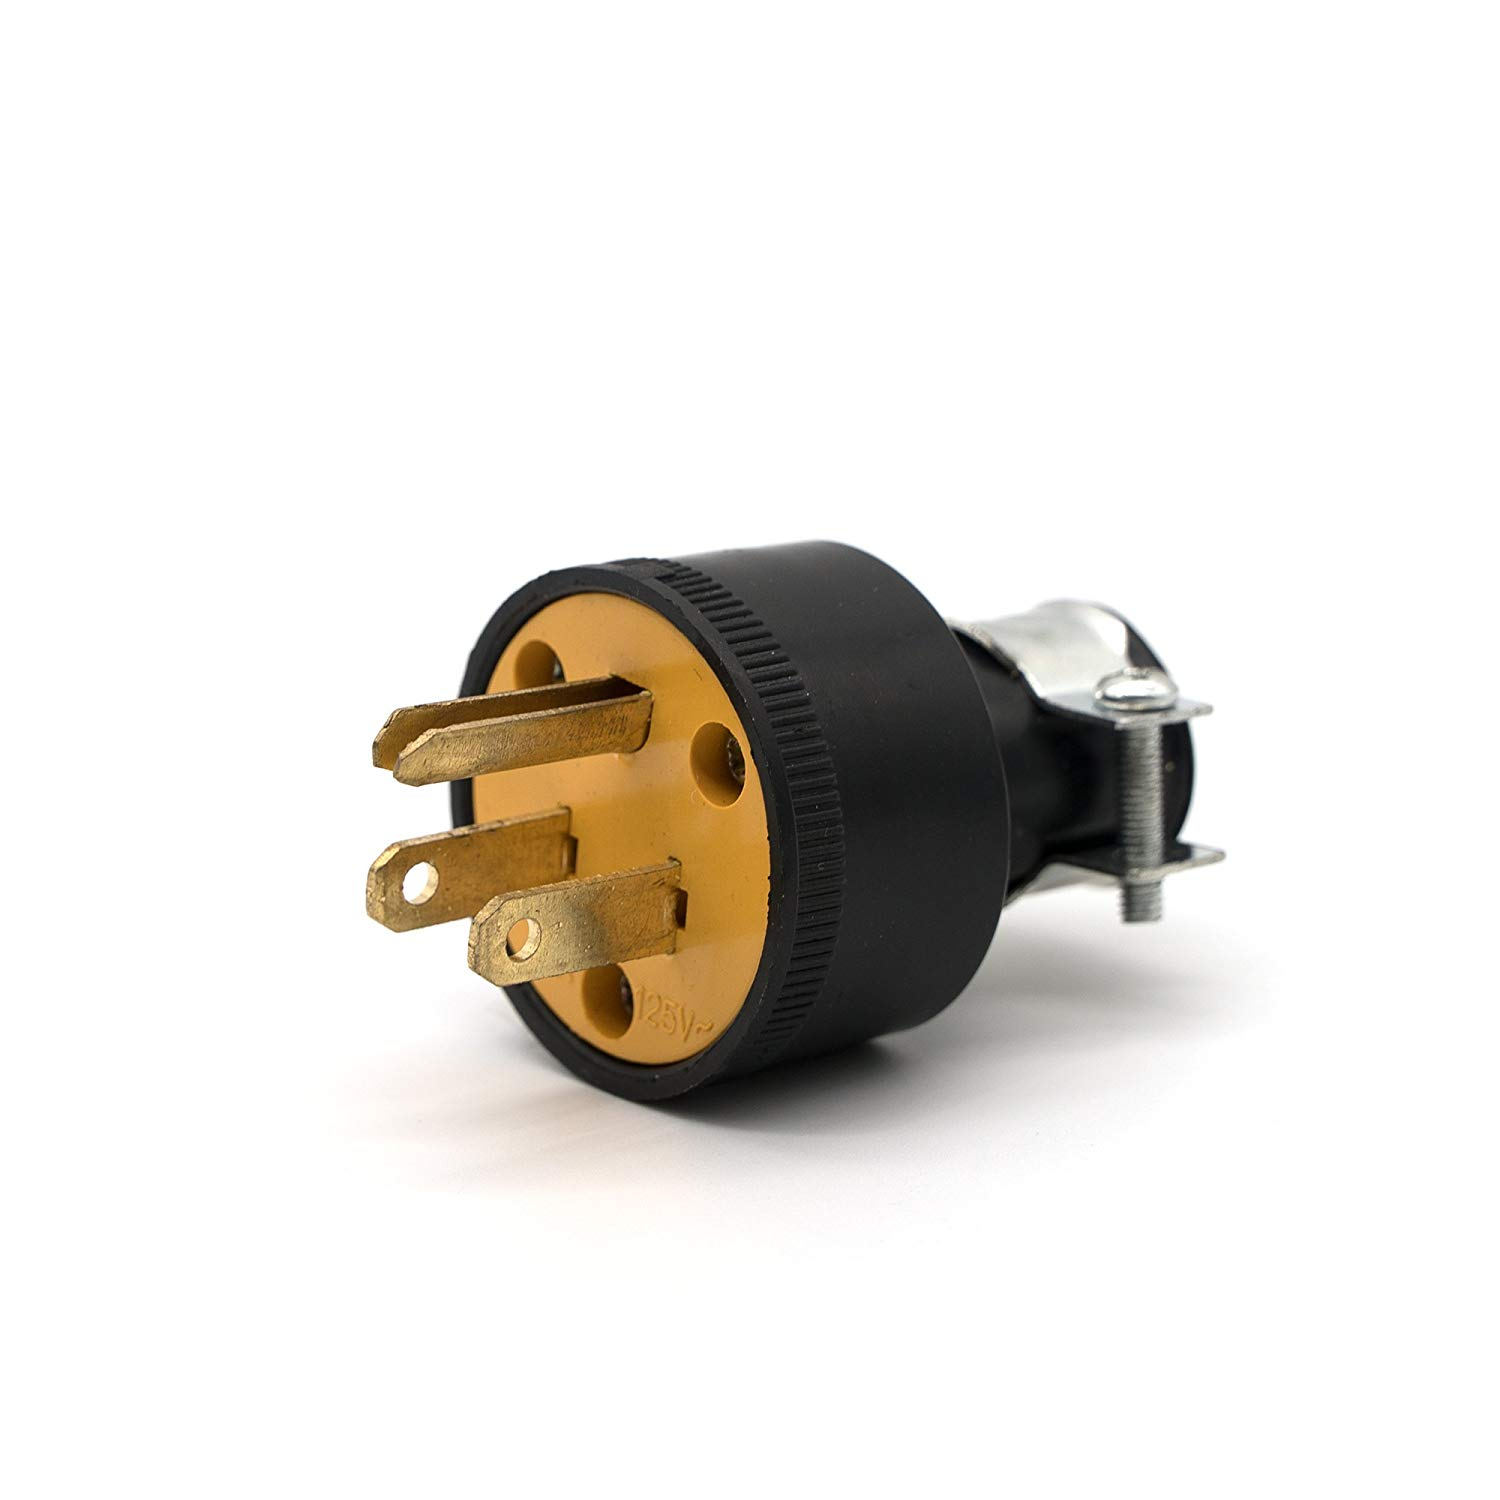 Cheap Replacement Male Electrical Plug Find Replacement Male Electrical Plug Deals On Line At Alibaba Com